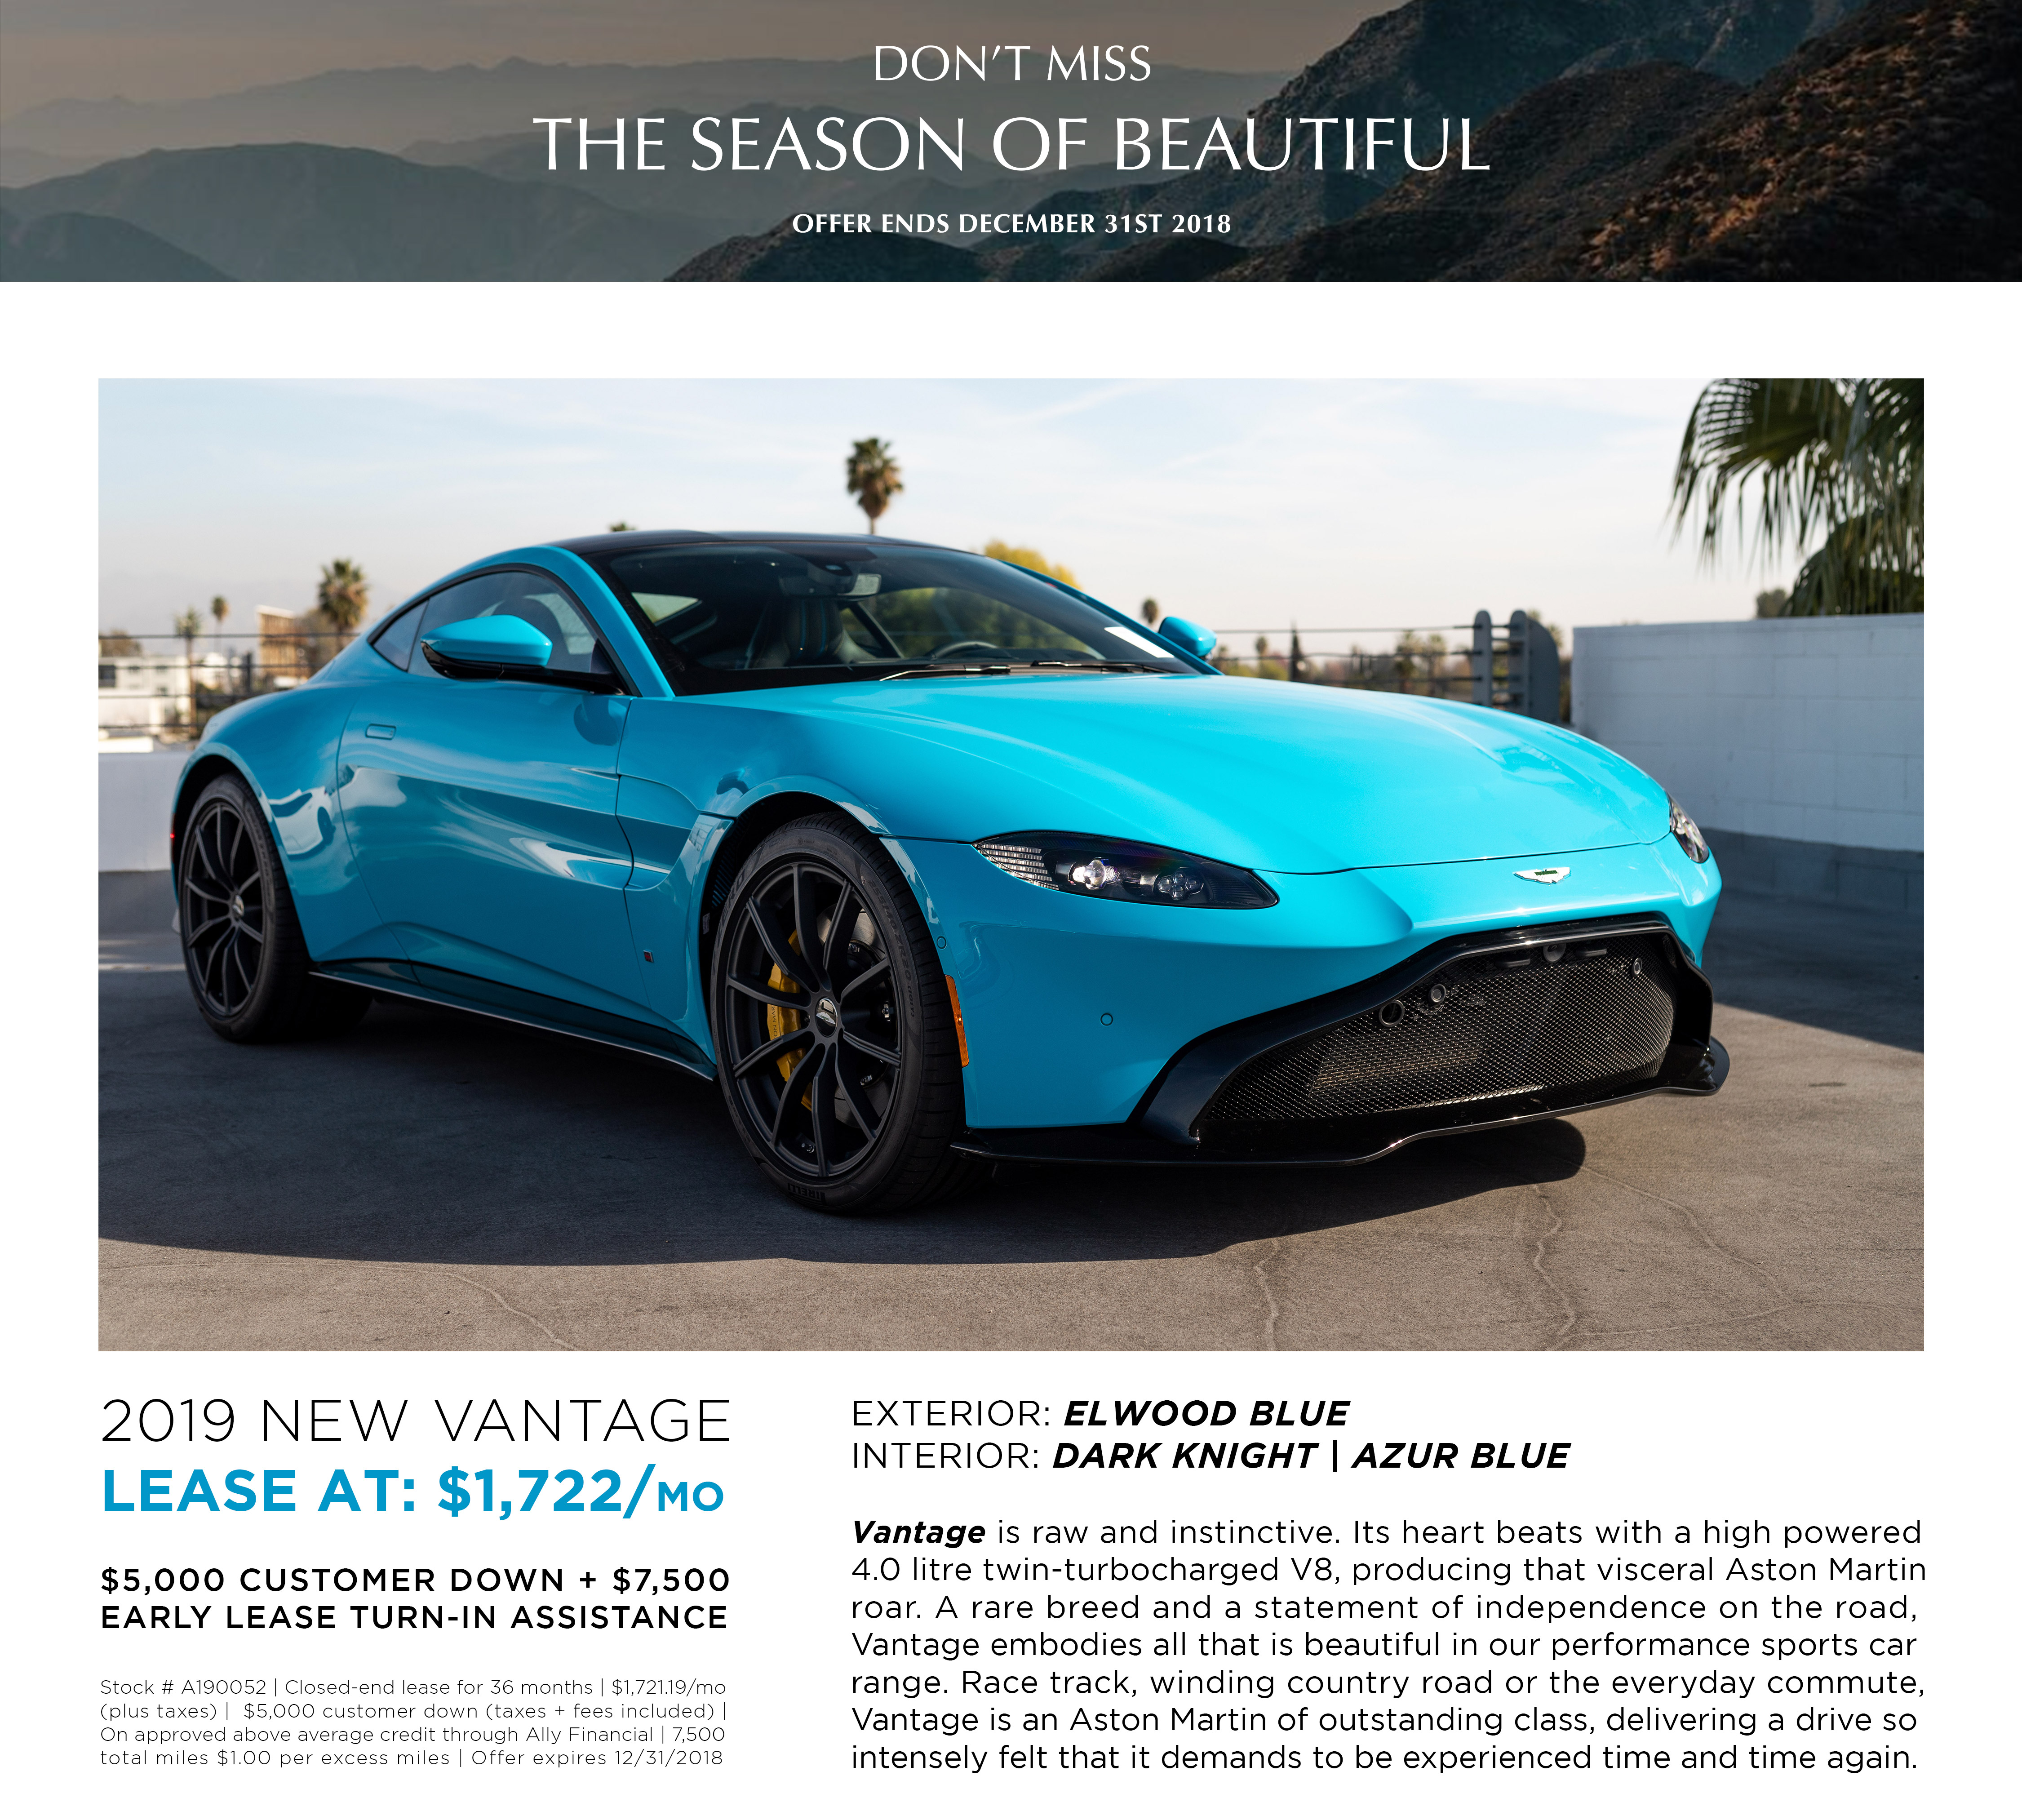 Lease A190052 New Vantage